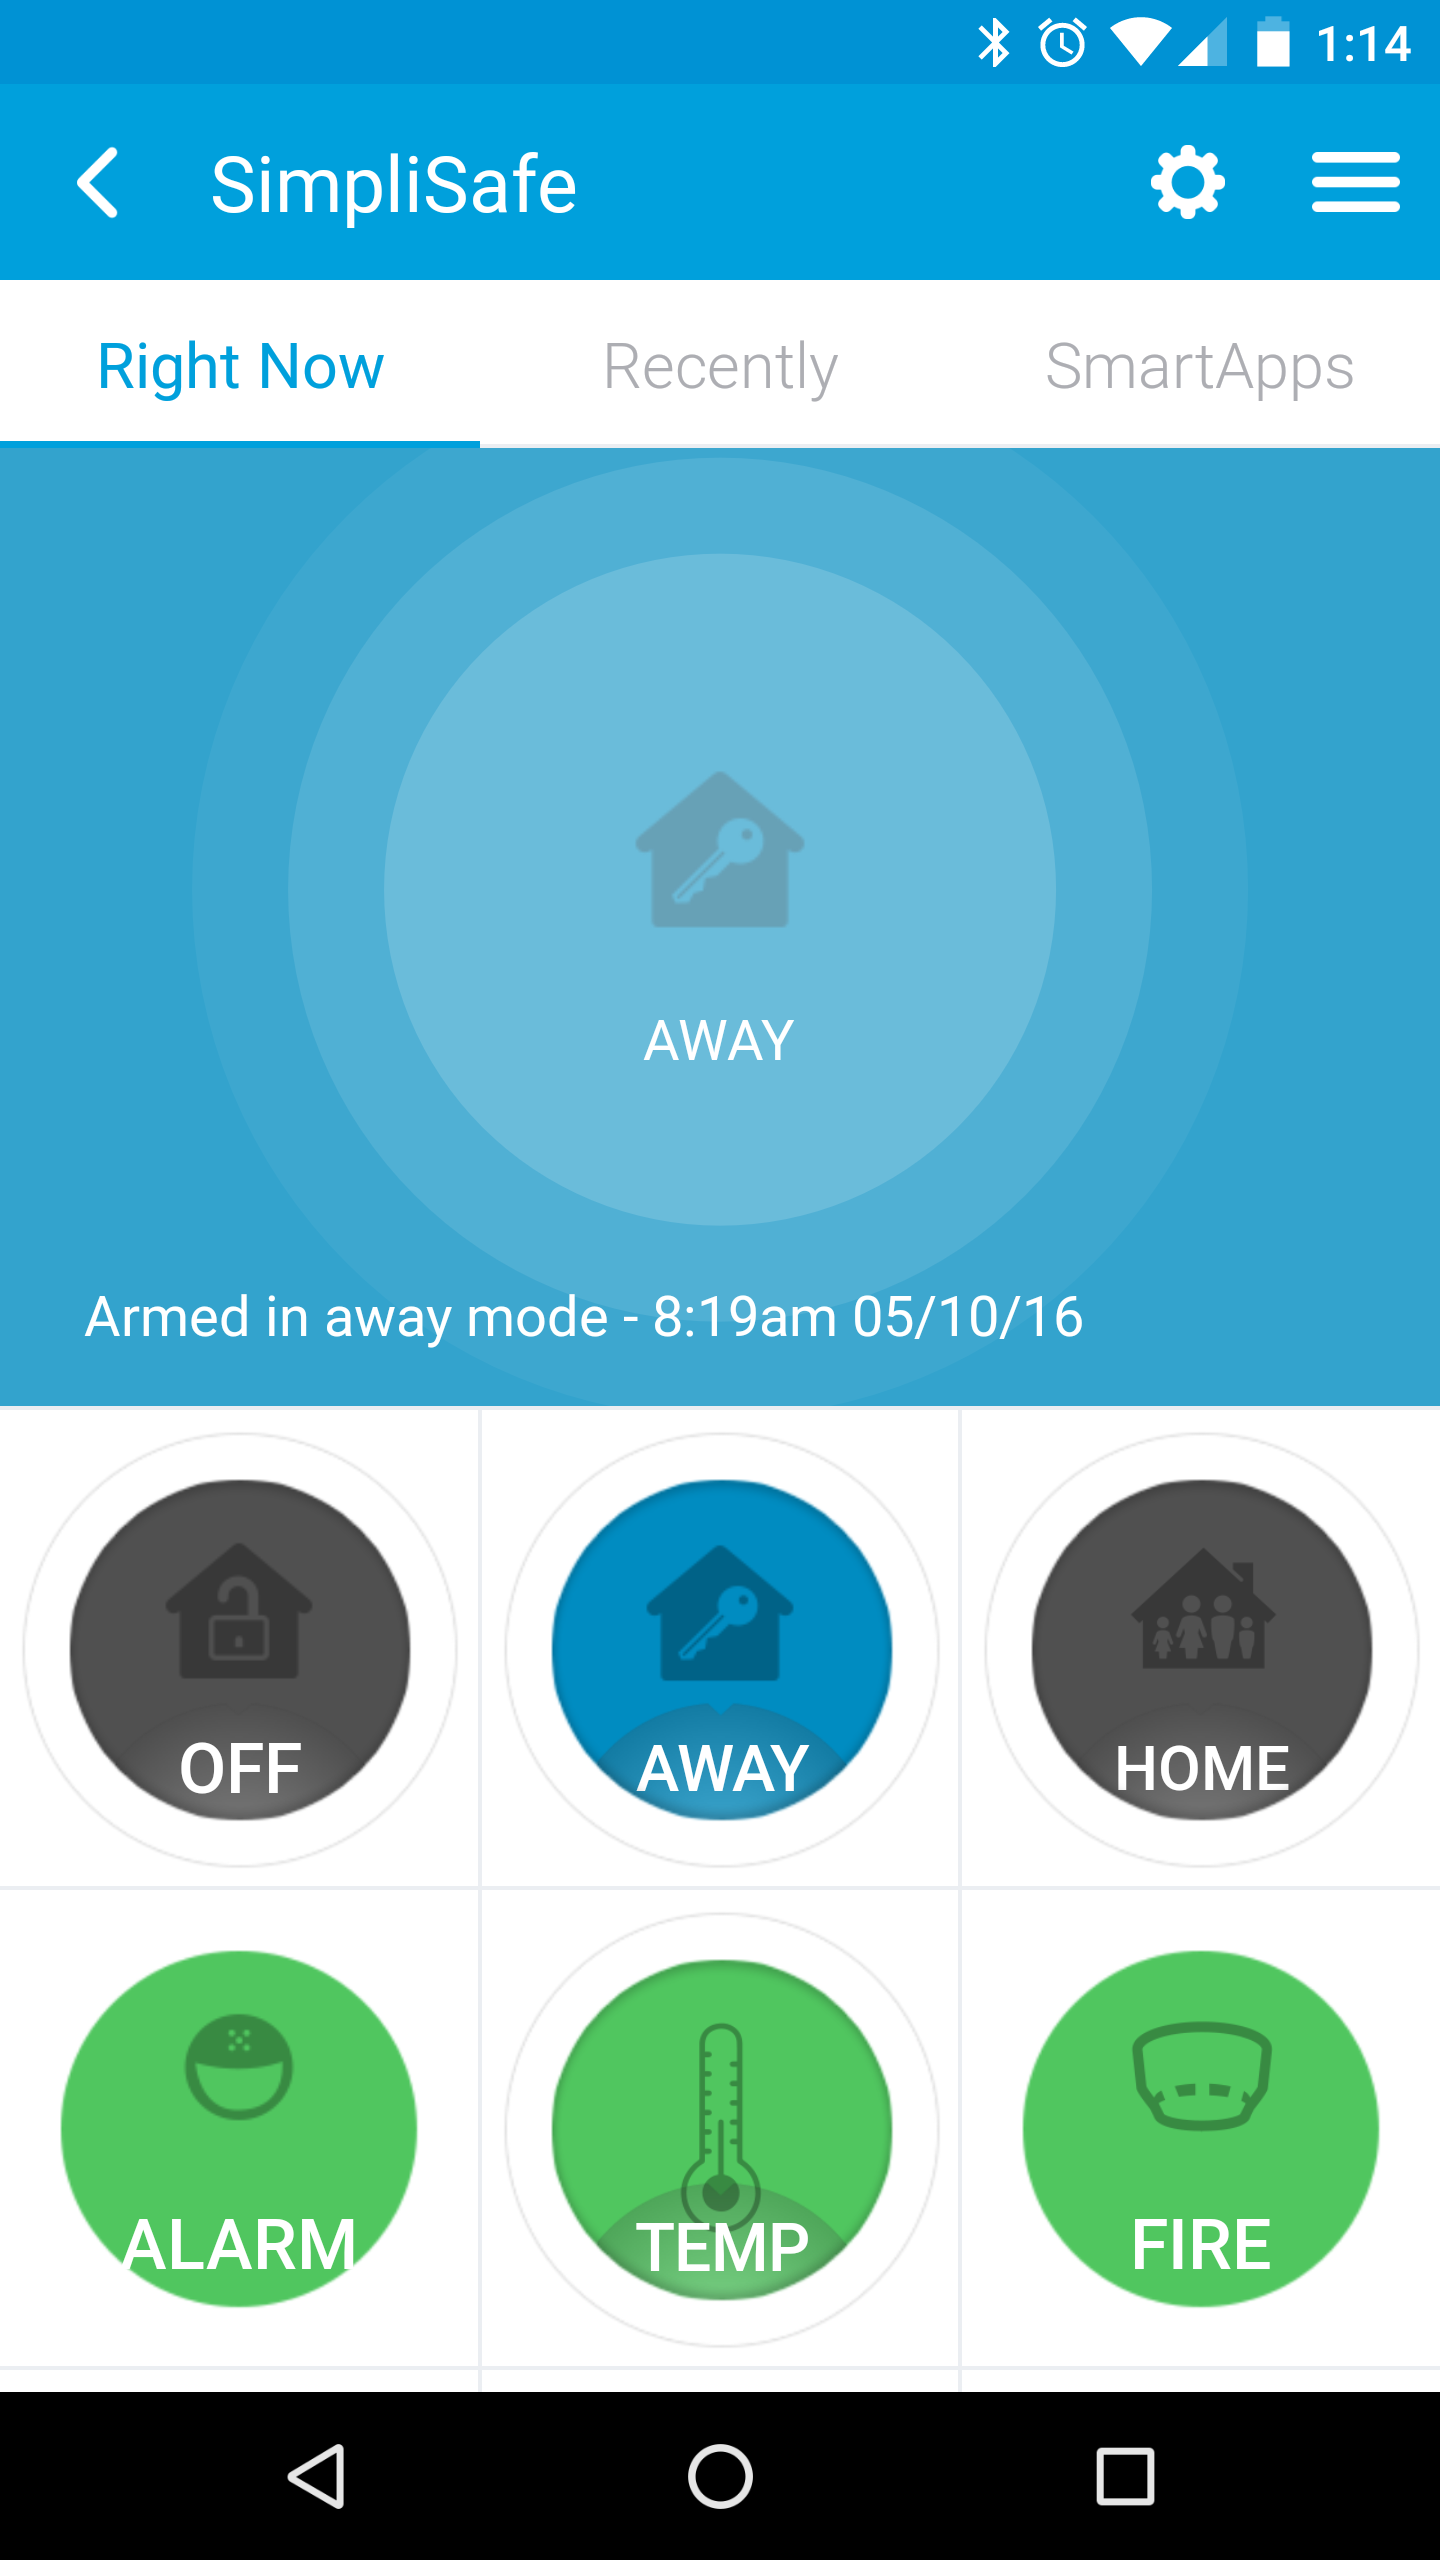 I Took The Original And Great Code By Fgorodishter And Made A Couple Of Enhancements You Can Now Pull The Status Of Simplisafe Clouds Projects Smartthings